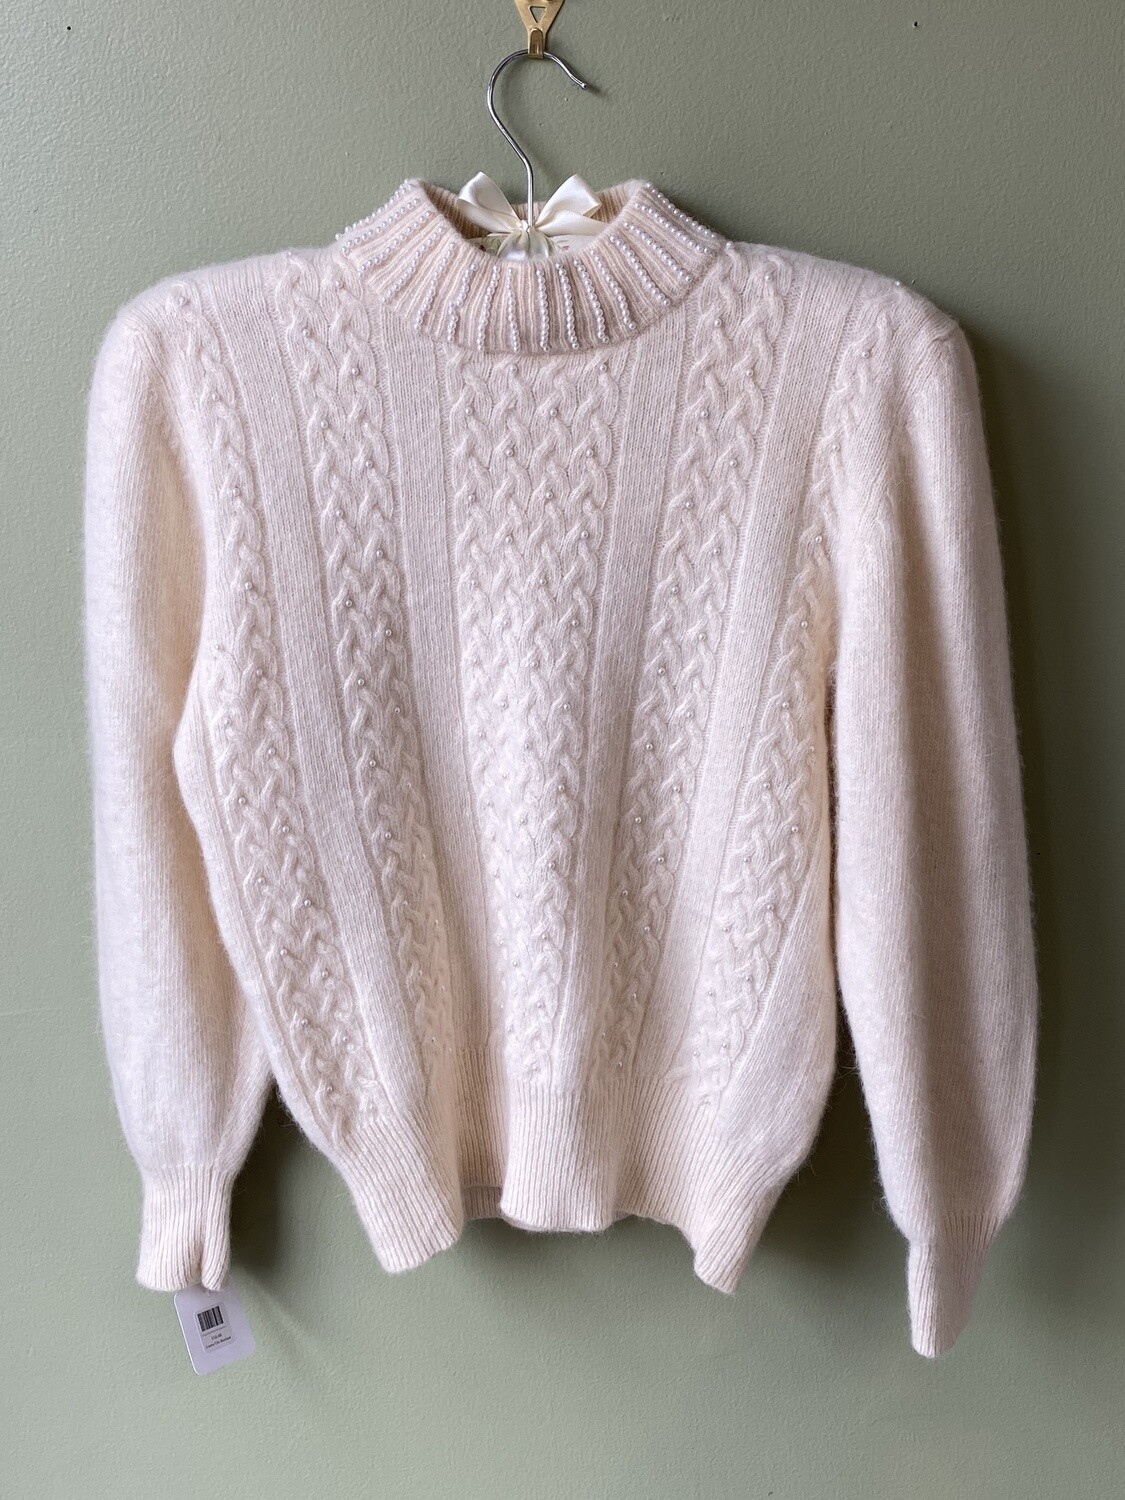 Vintage Neil Martin Lambswool/Angora Blend Sweater w/Pearl-Embellished Collar, Size M